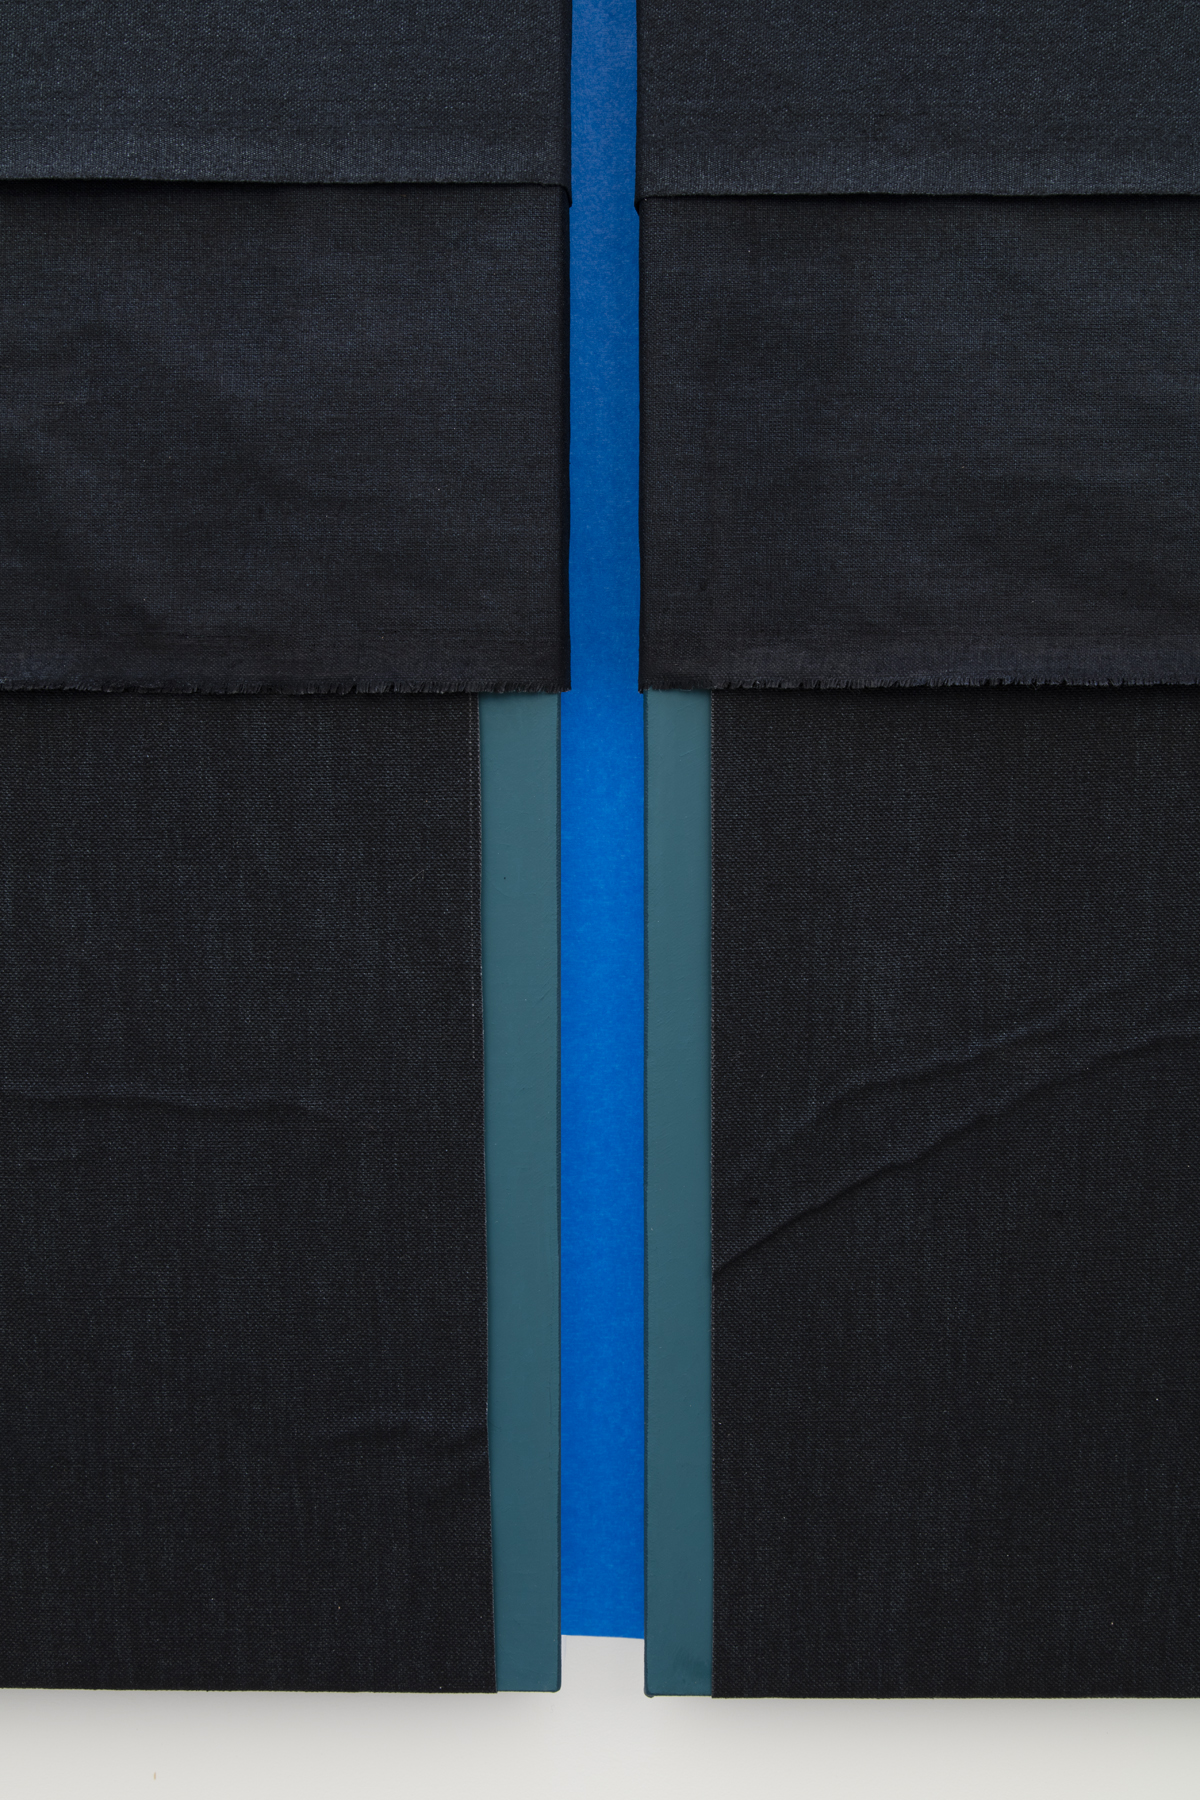 N. Dash Untitled, 2017 (detail); oil, pigment, acrylic, linen, painters tape, wood support; photo Jean Vong; Courtesy the artist, Casey Kaplan Gallery, New York, and Mehdi Chouakri, Berlin